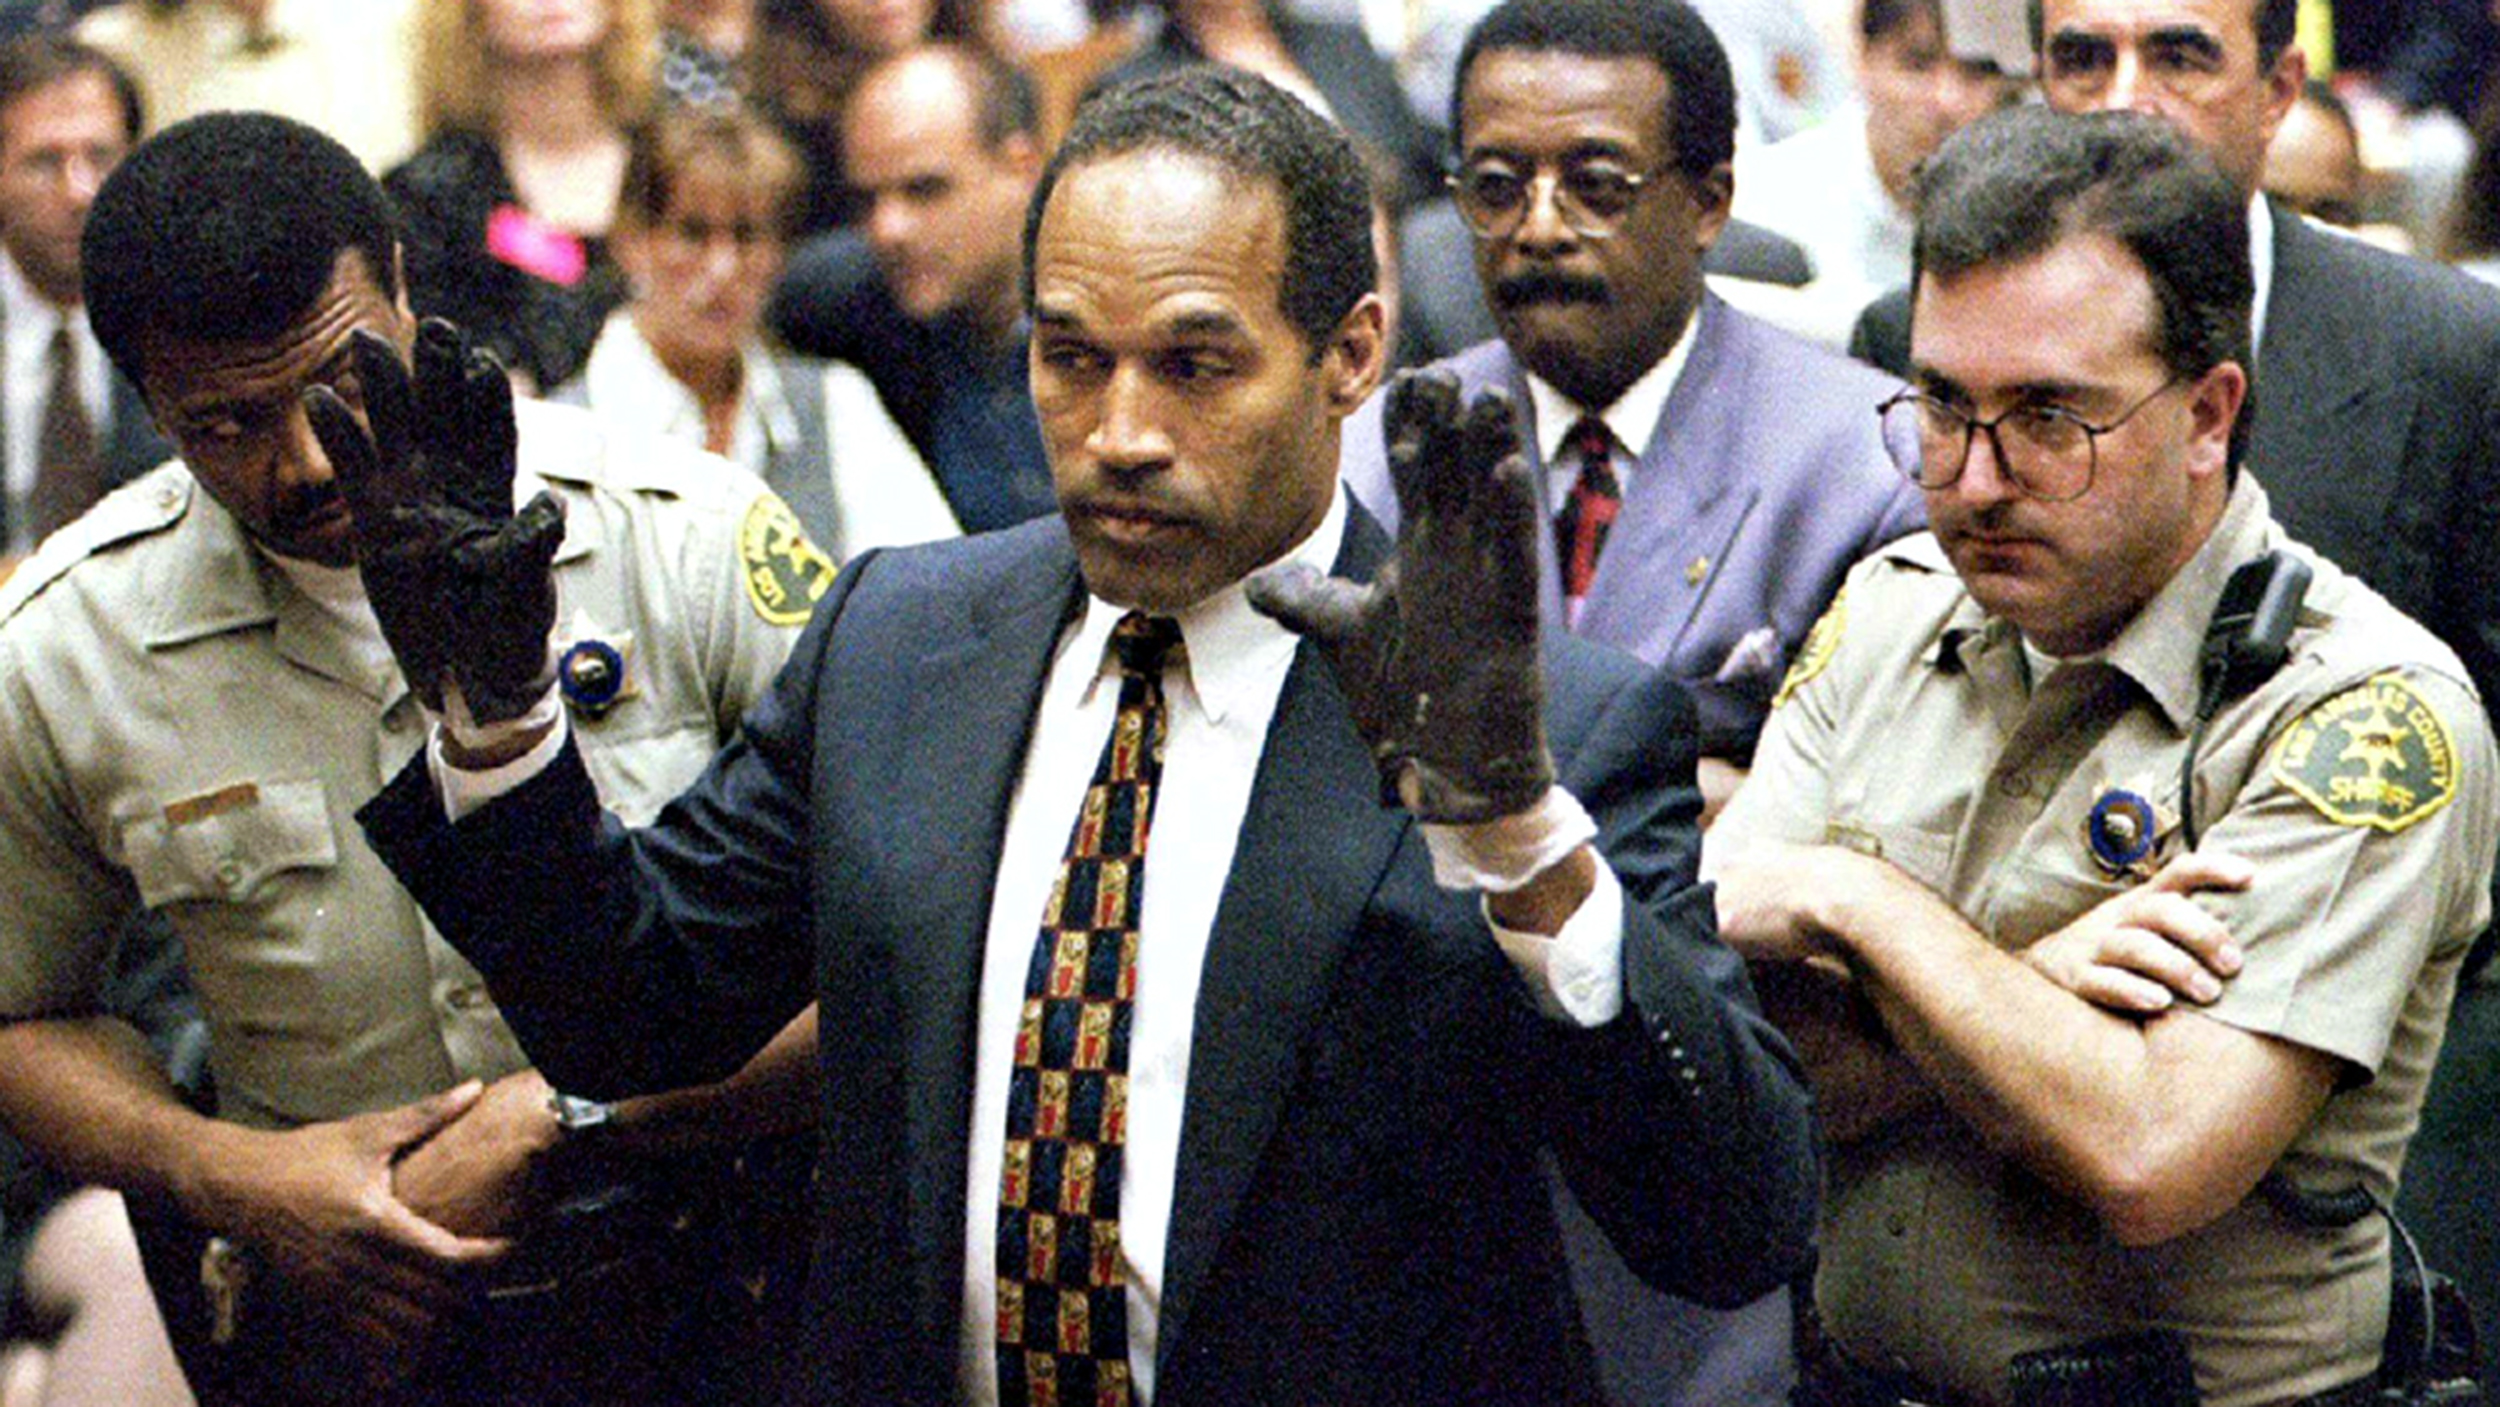 O.J. Simpson holds up his hands to the jury wearing the infamous gloves found at the crime scene and his home in this June 15, 1995 file photo.